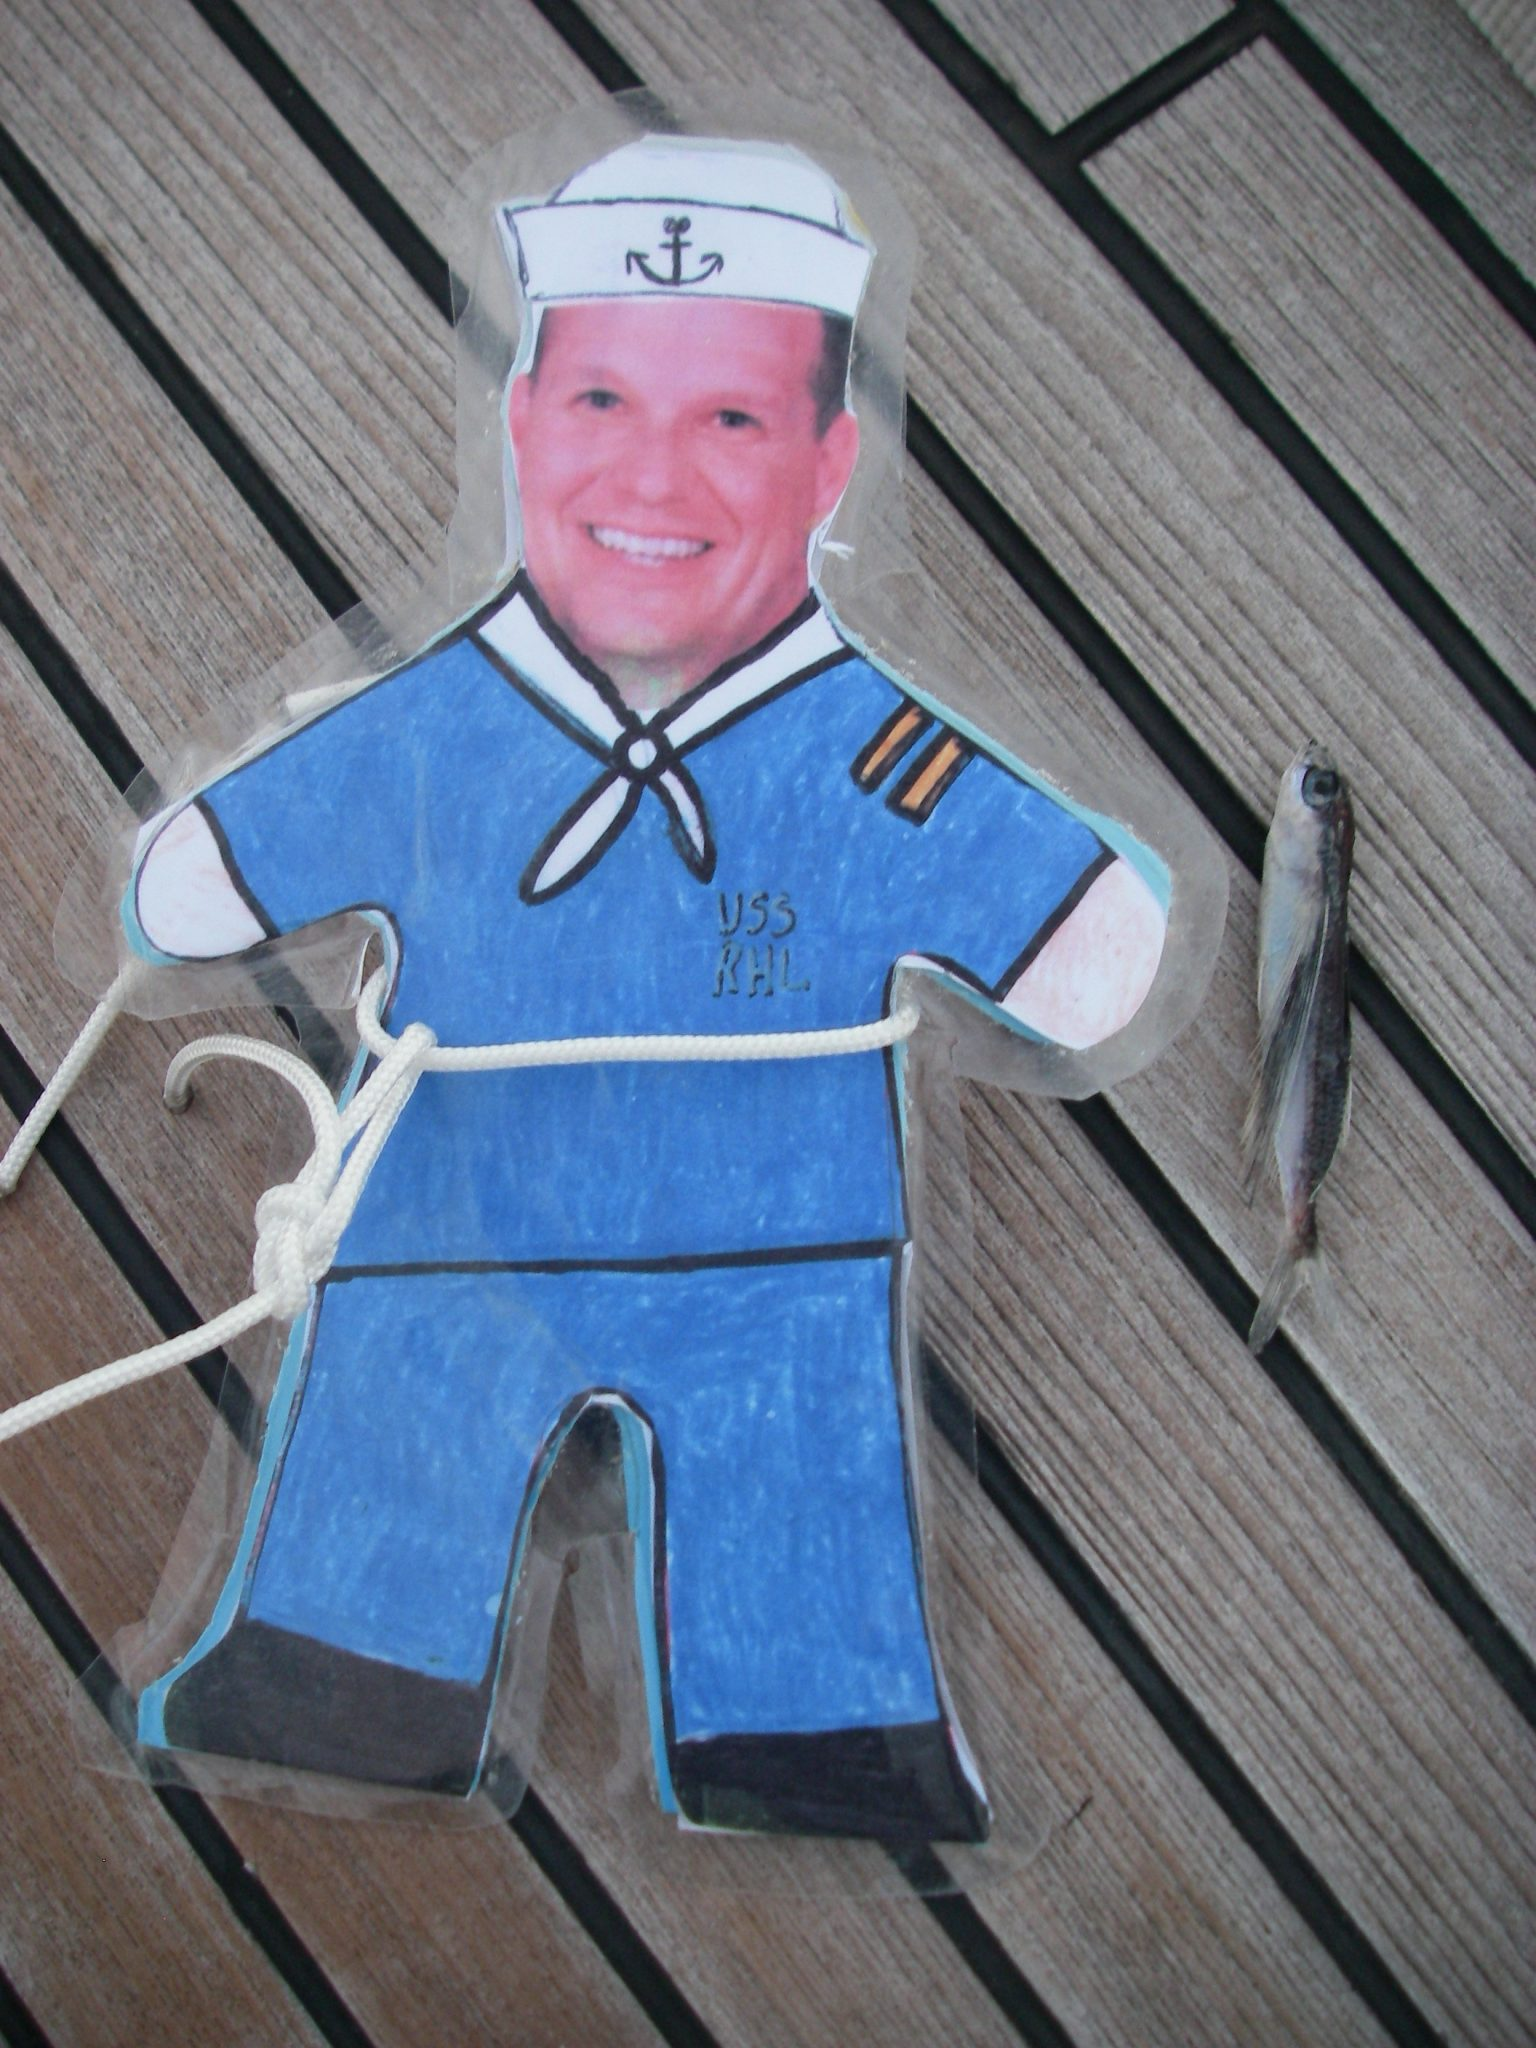 58. Flat Mr. Davis found a flying fish that landed on Joyful's deck in the morning we sailed into Vanuatu